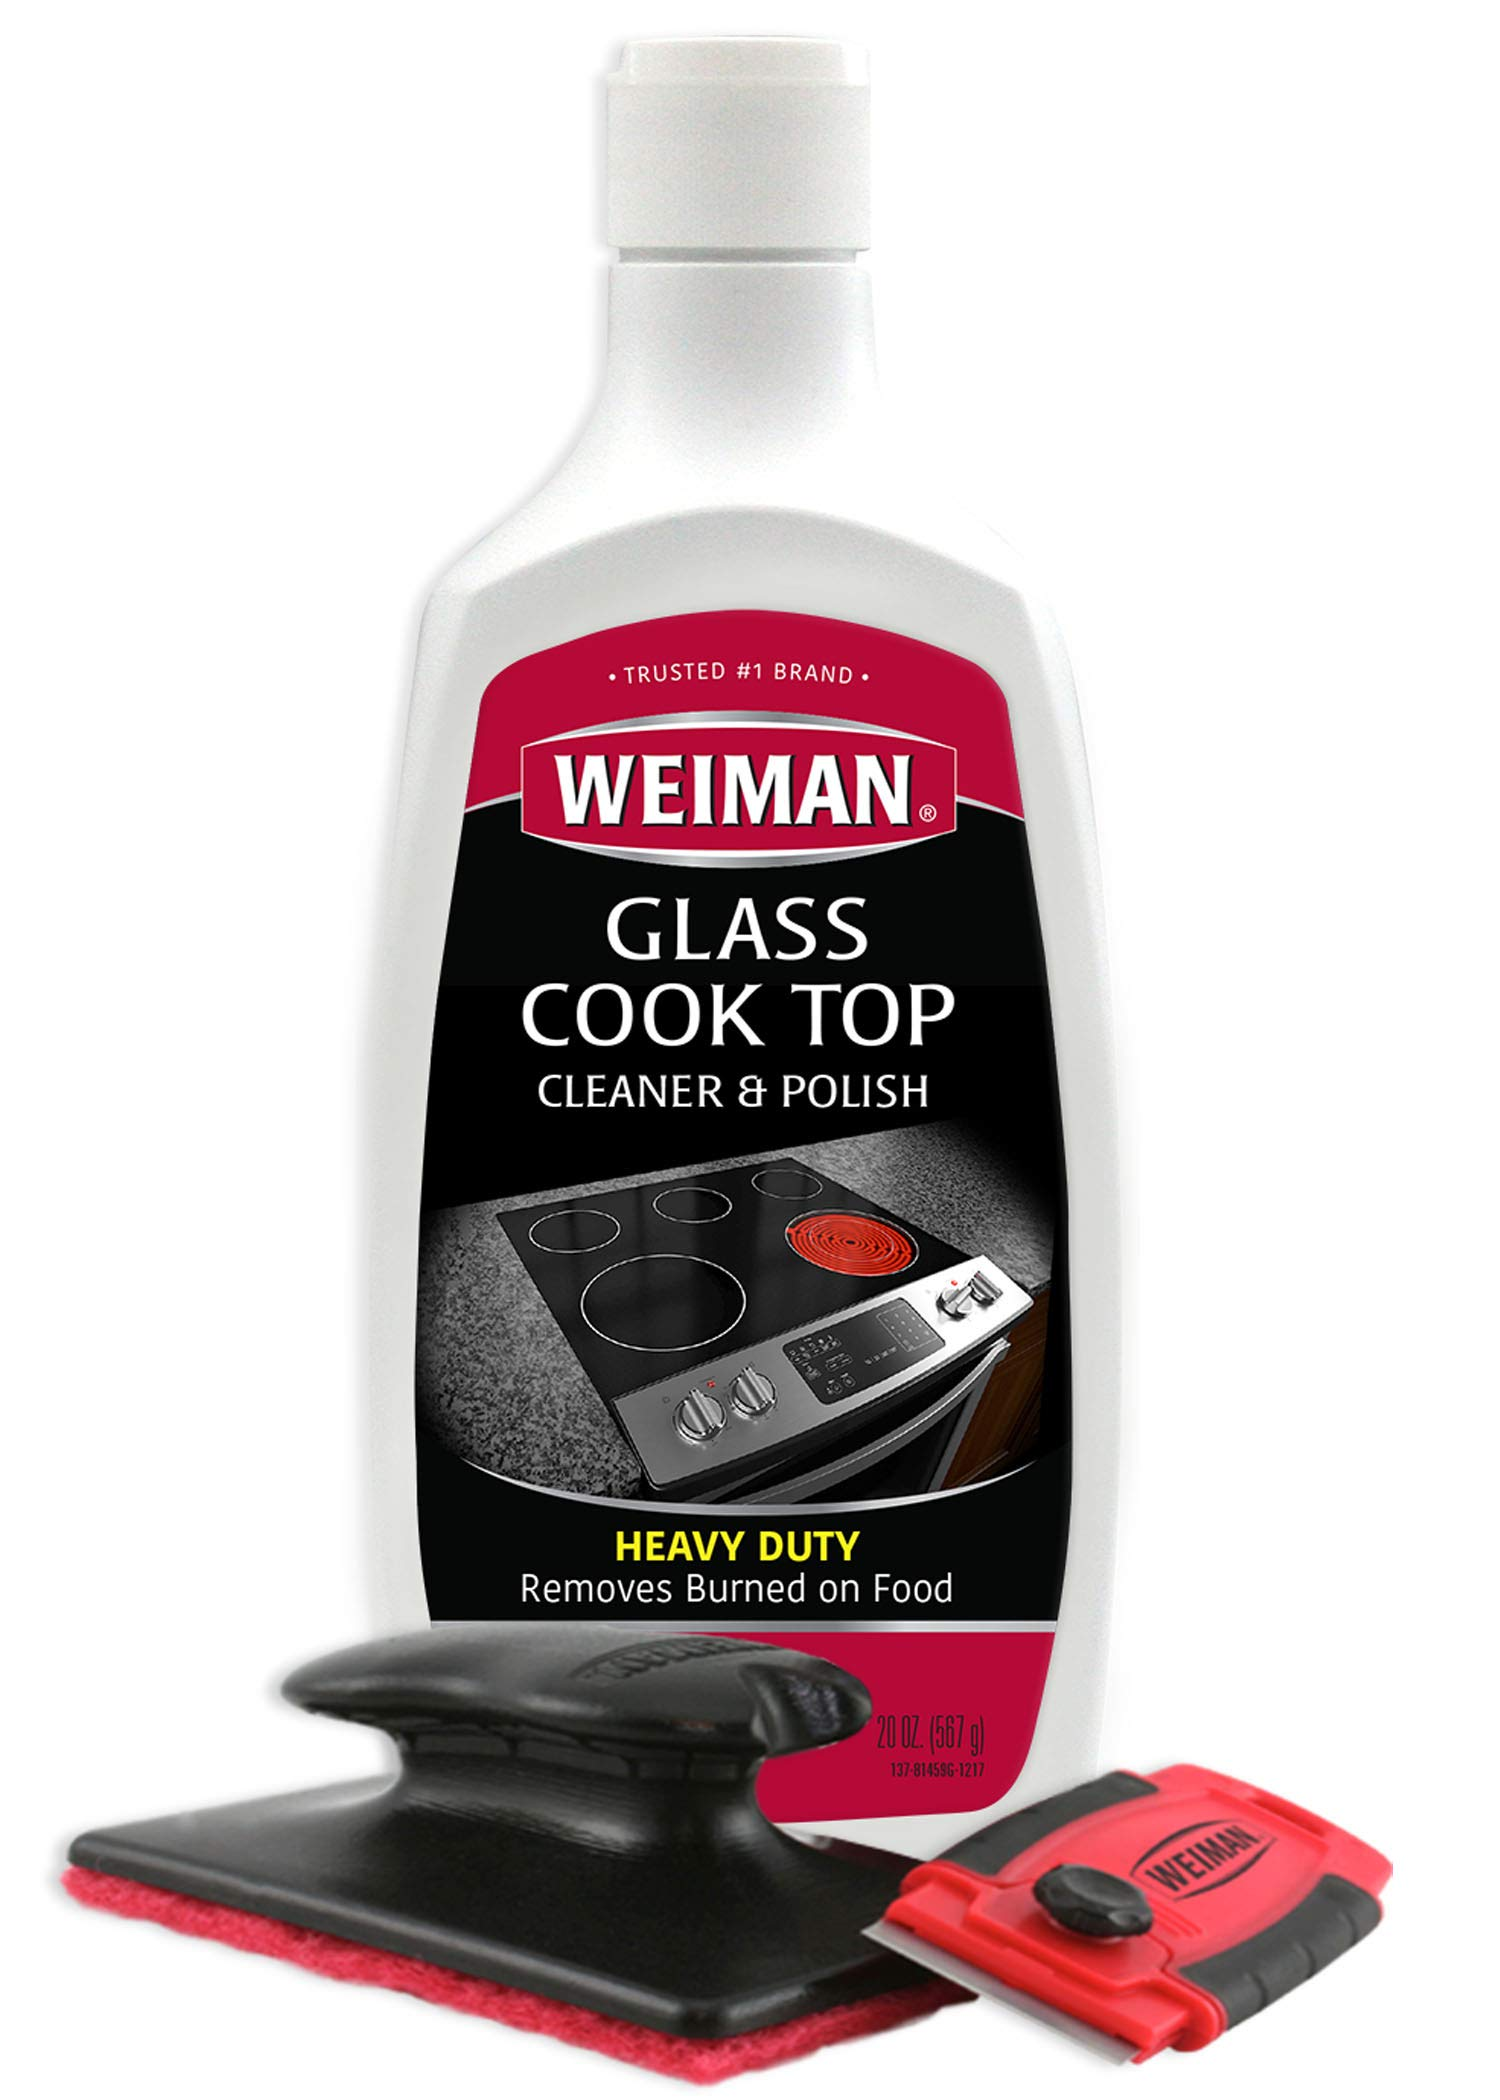 Weiman Cooktop Cleaner Kit - Cook Top Cleaner and Polish 20 Ounce - Scrubbing Pad, Cleaning Tool, Cooktop Razor Scraper by Weiman